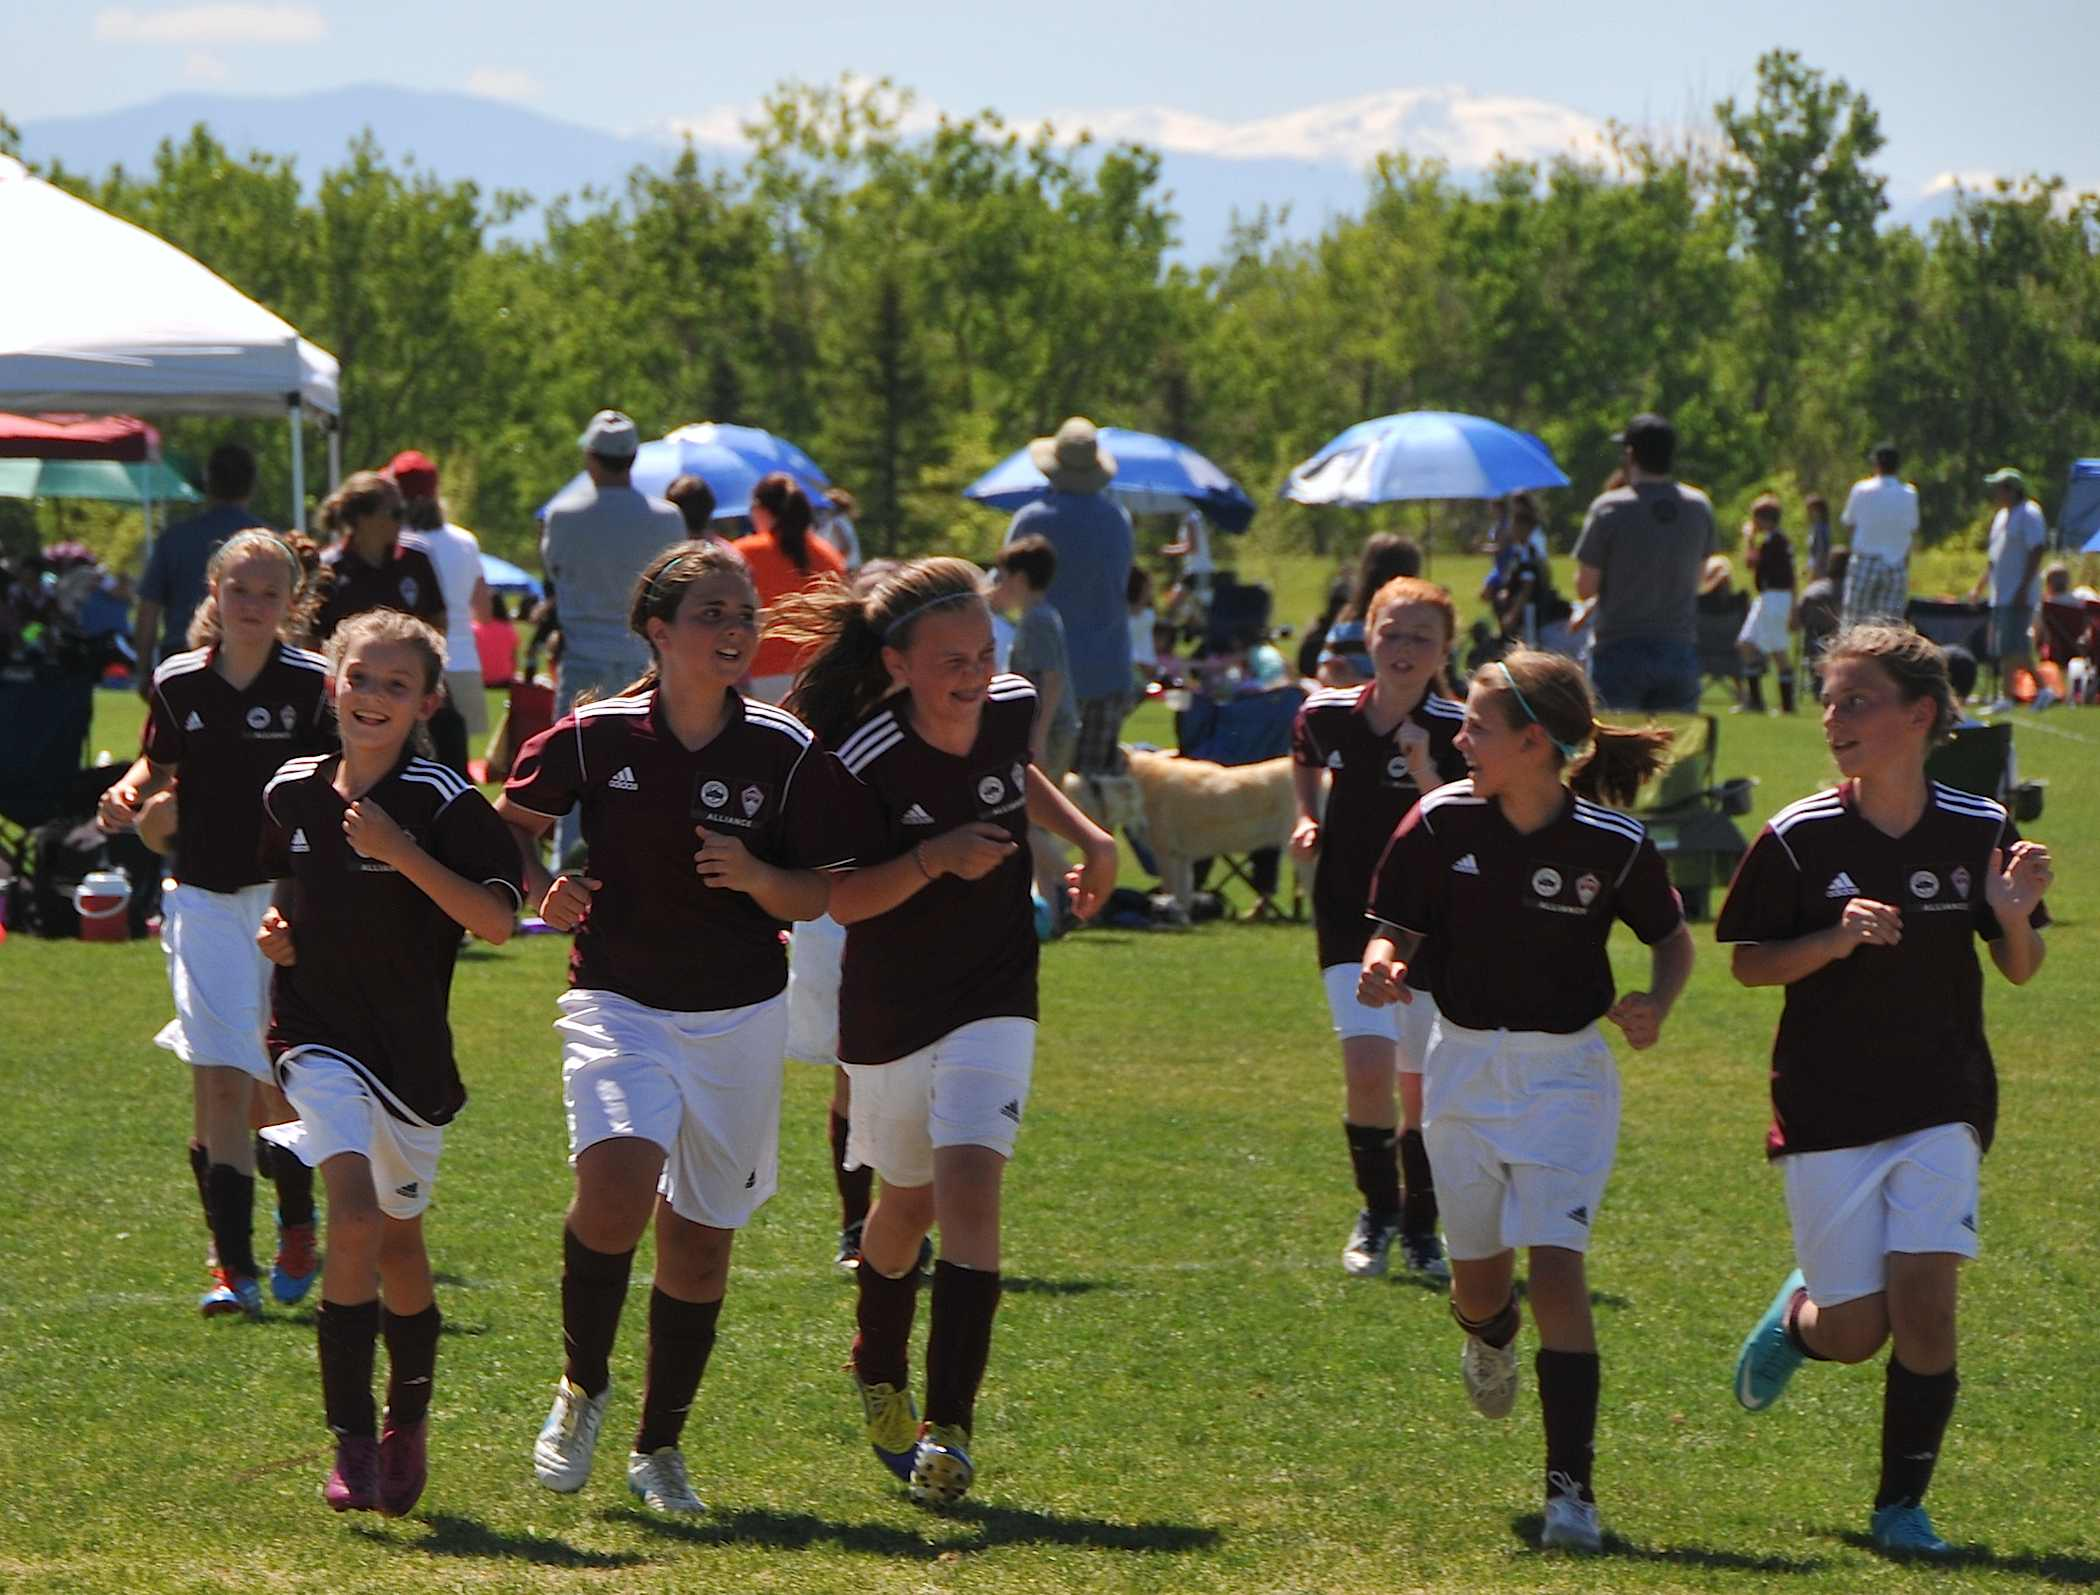 Photo: Players with Colorado Rapids youth team